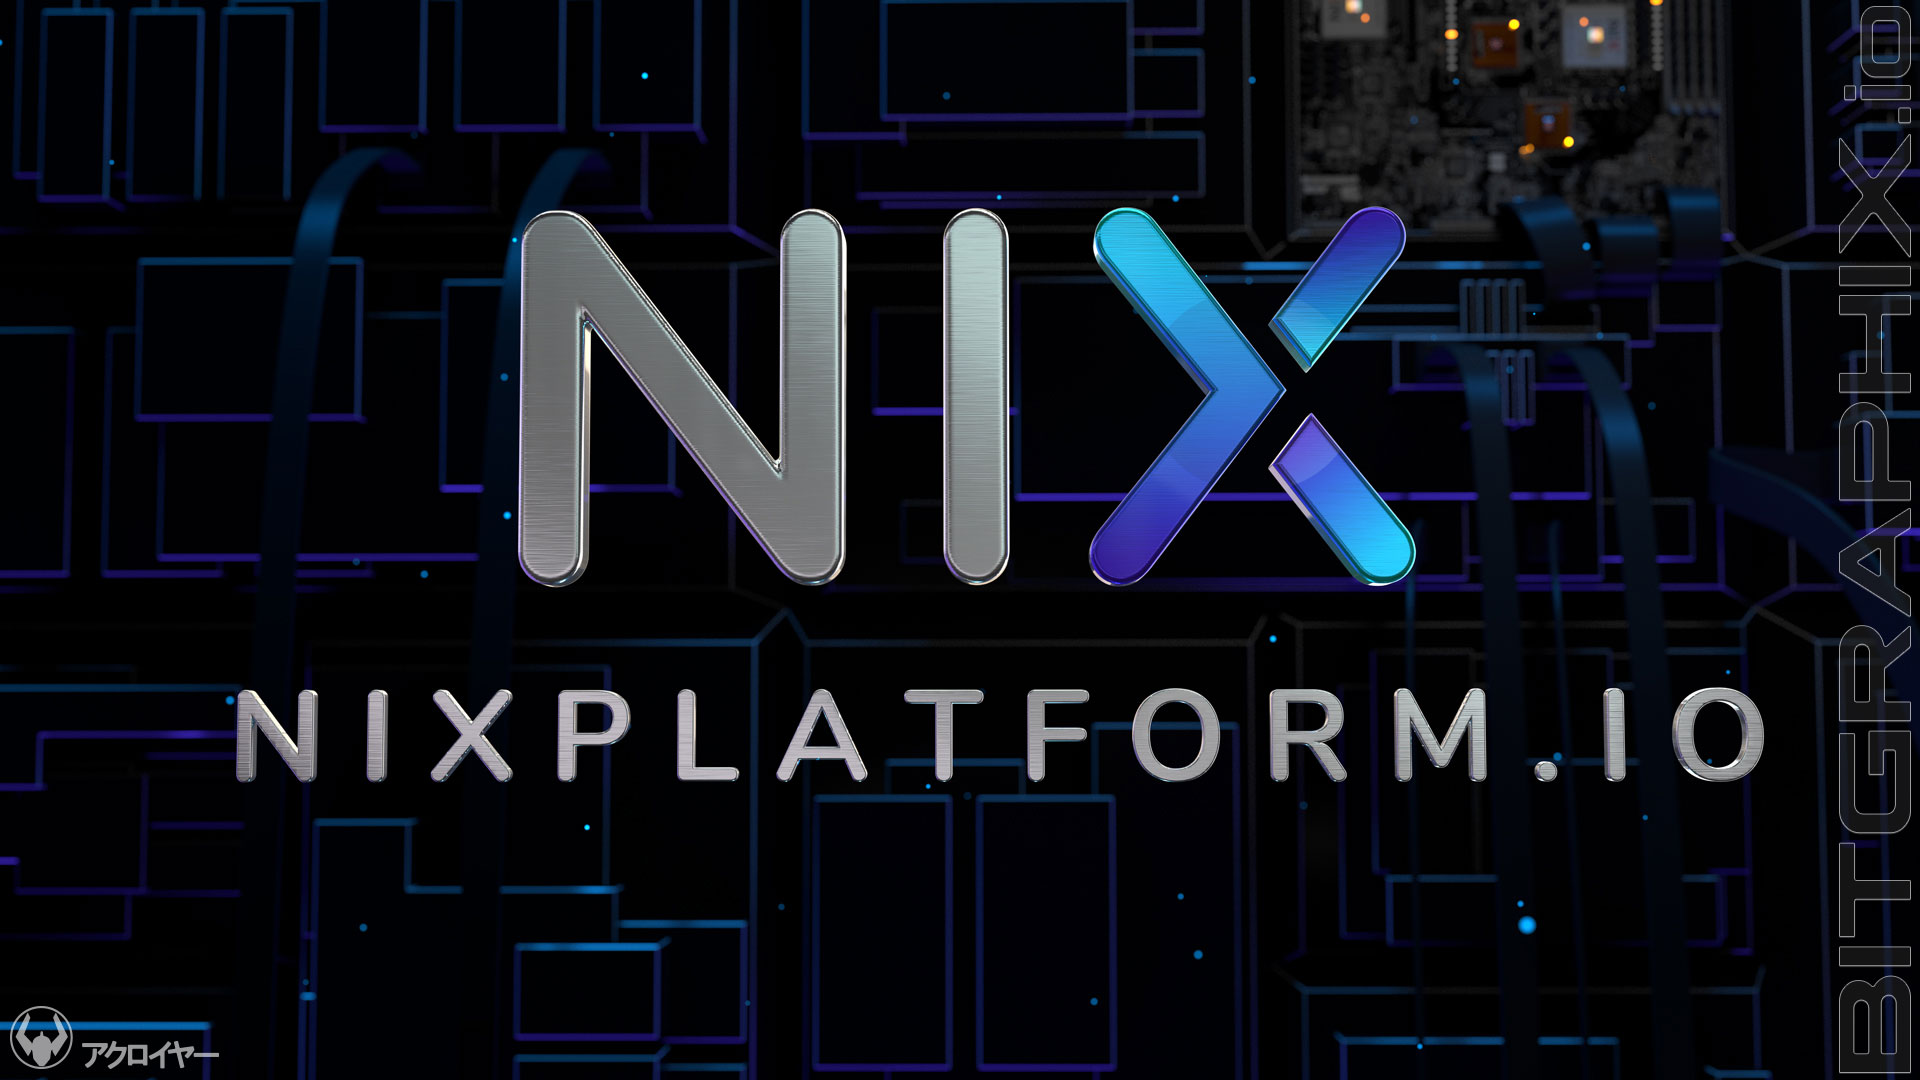 NIX-Platform-Ghost-Protocol-promotional-animation-still-frame-logo-build-detail-3d-vfx-redshift-render